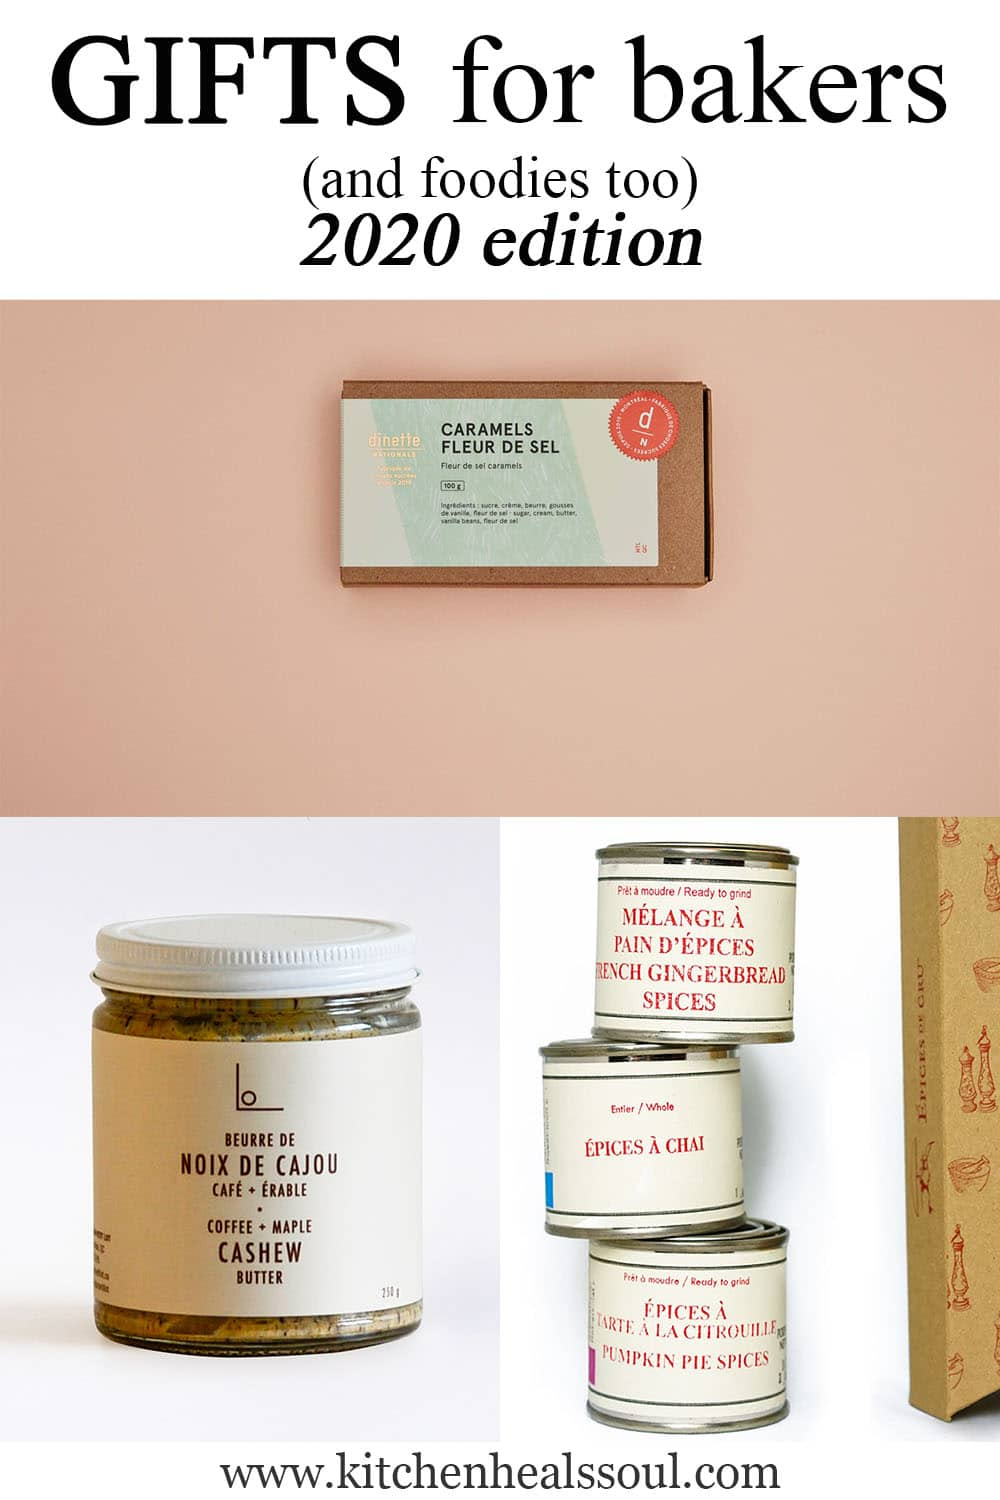 Gifts for bakers 2020 editions featuring caramels, cashew butter, and spices